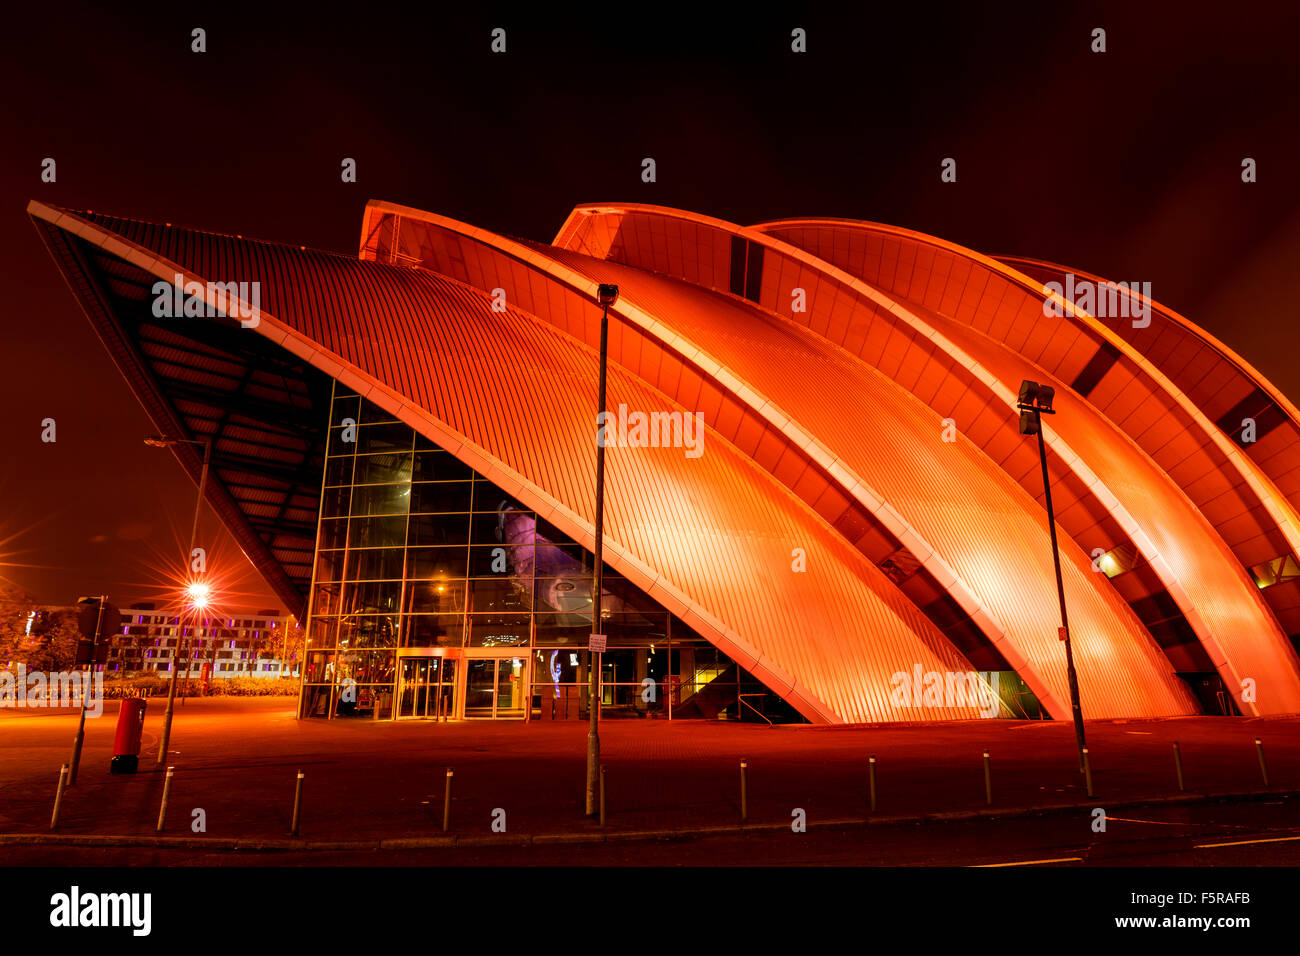 GLASGOW, SCOTLAND. OCTOBER 27 2015 : The Clyde Auditorium (Armadillo) Concert Hall on banks of River Clyde, Glasgow, - Stock Image